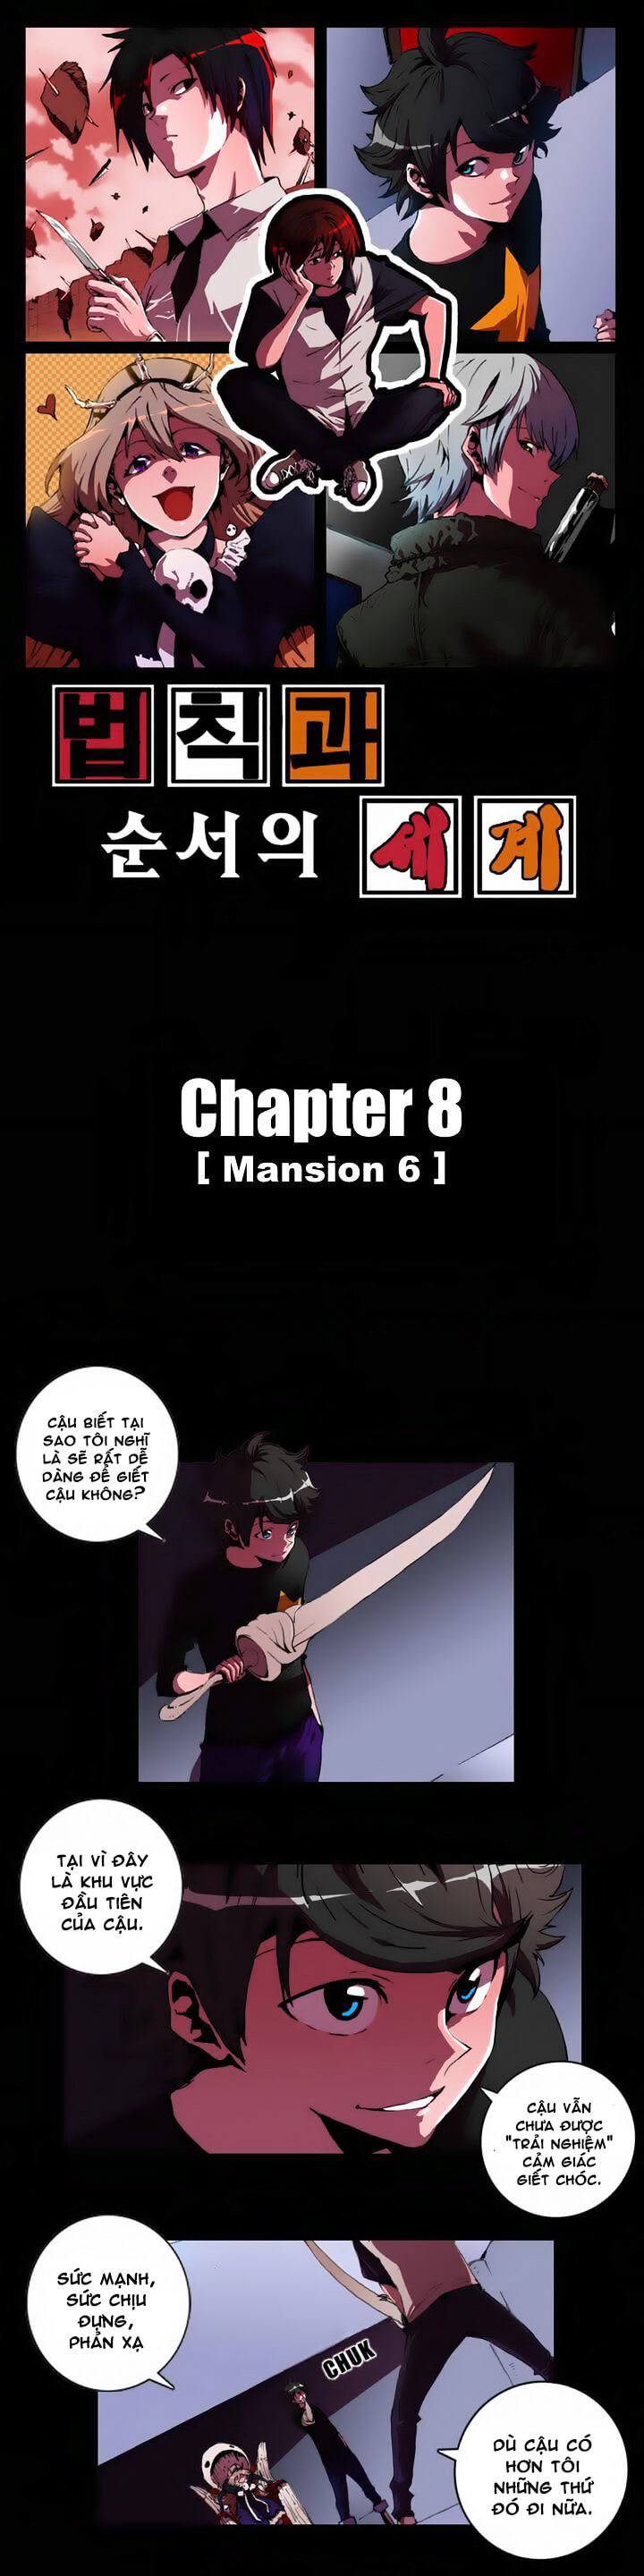 World of Law and Order Chap 8 - Next Chap 9